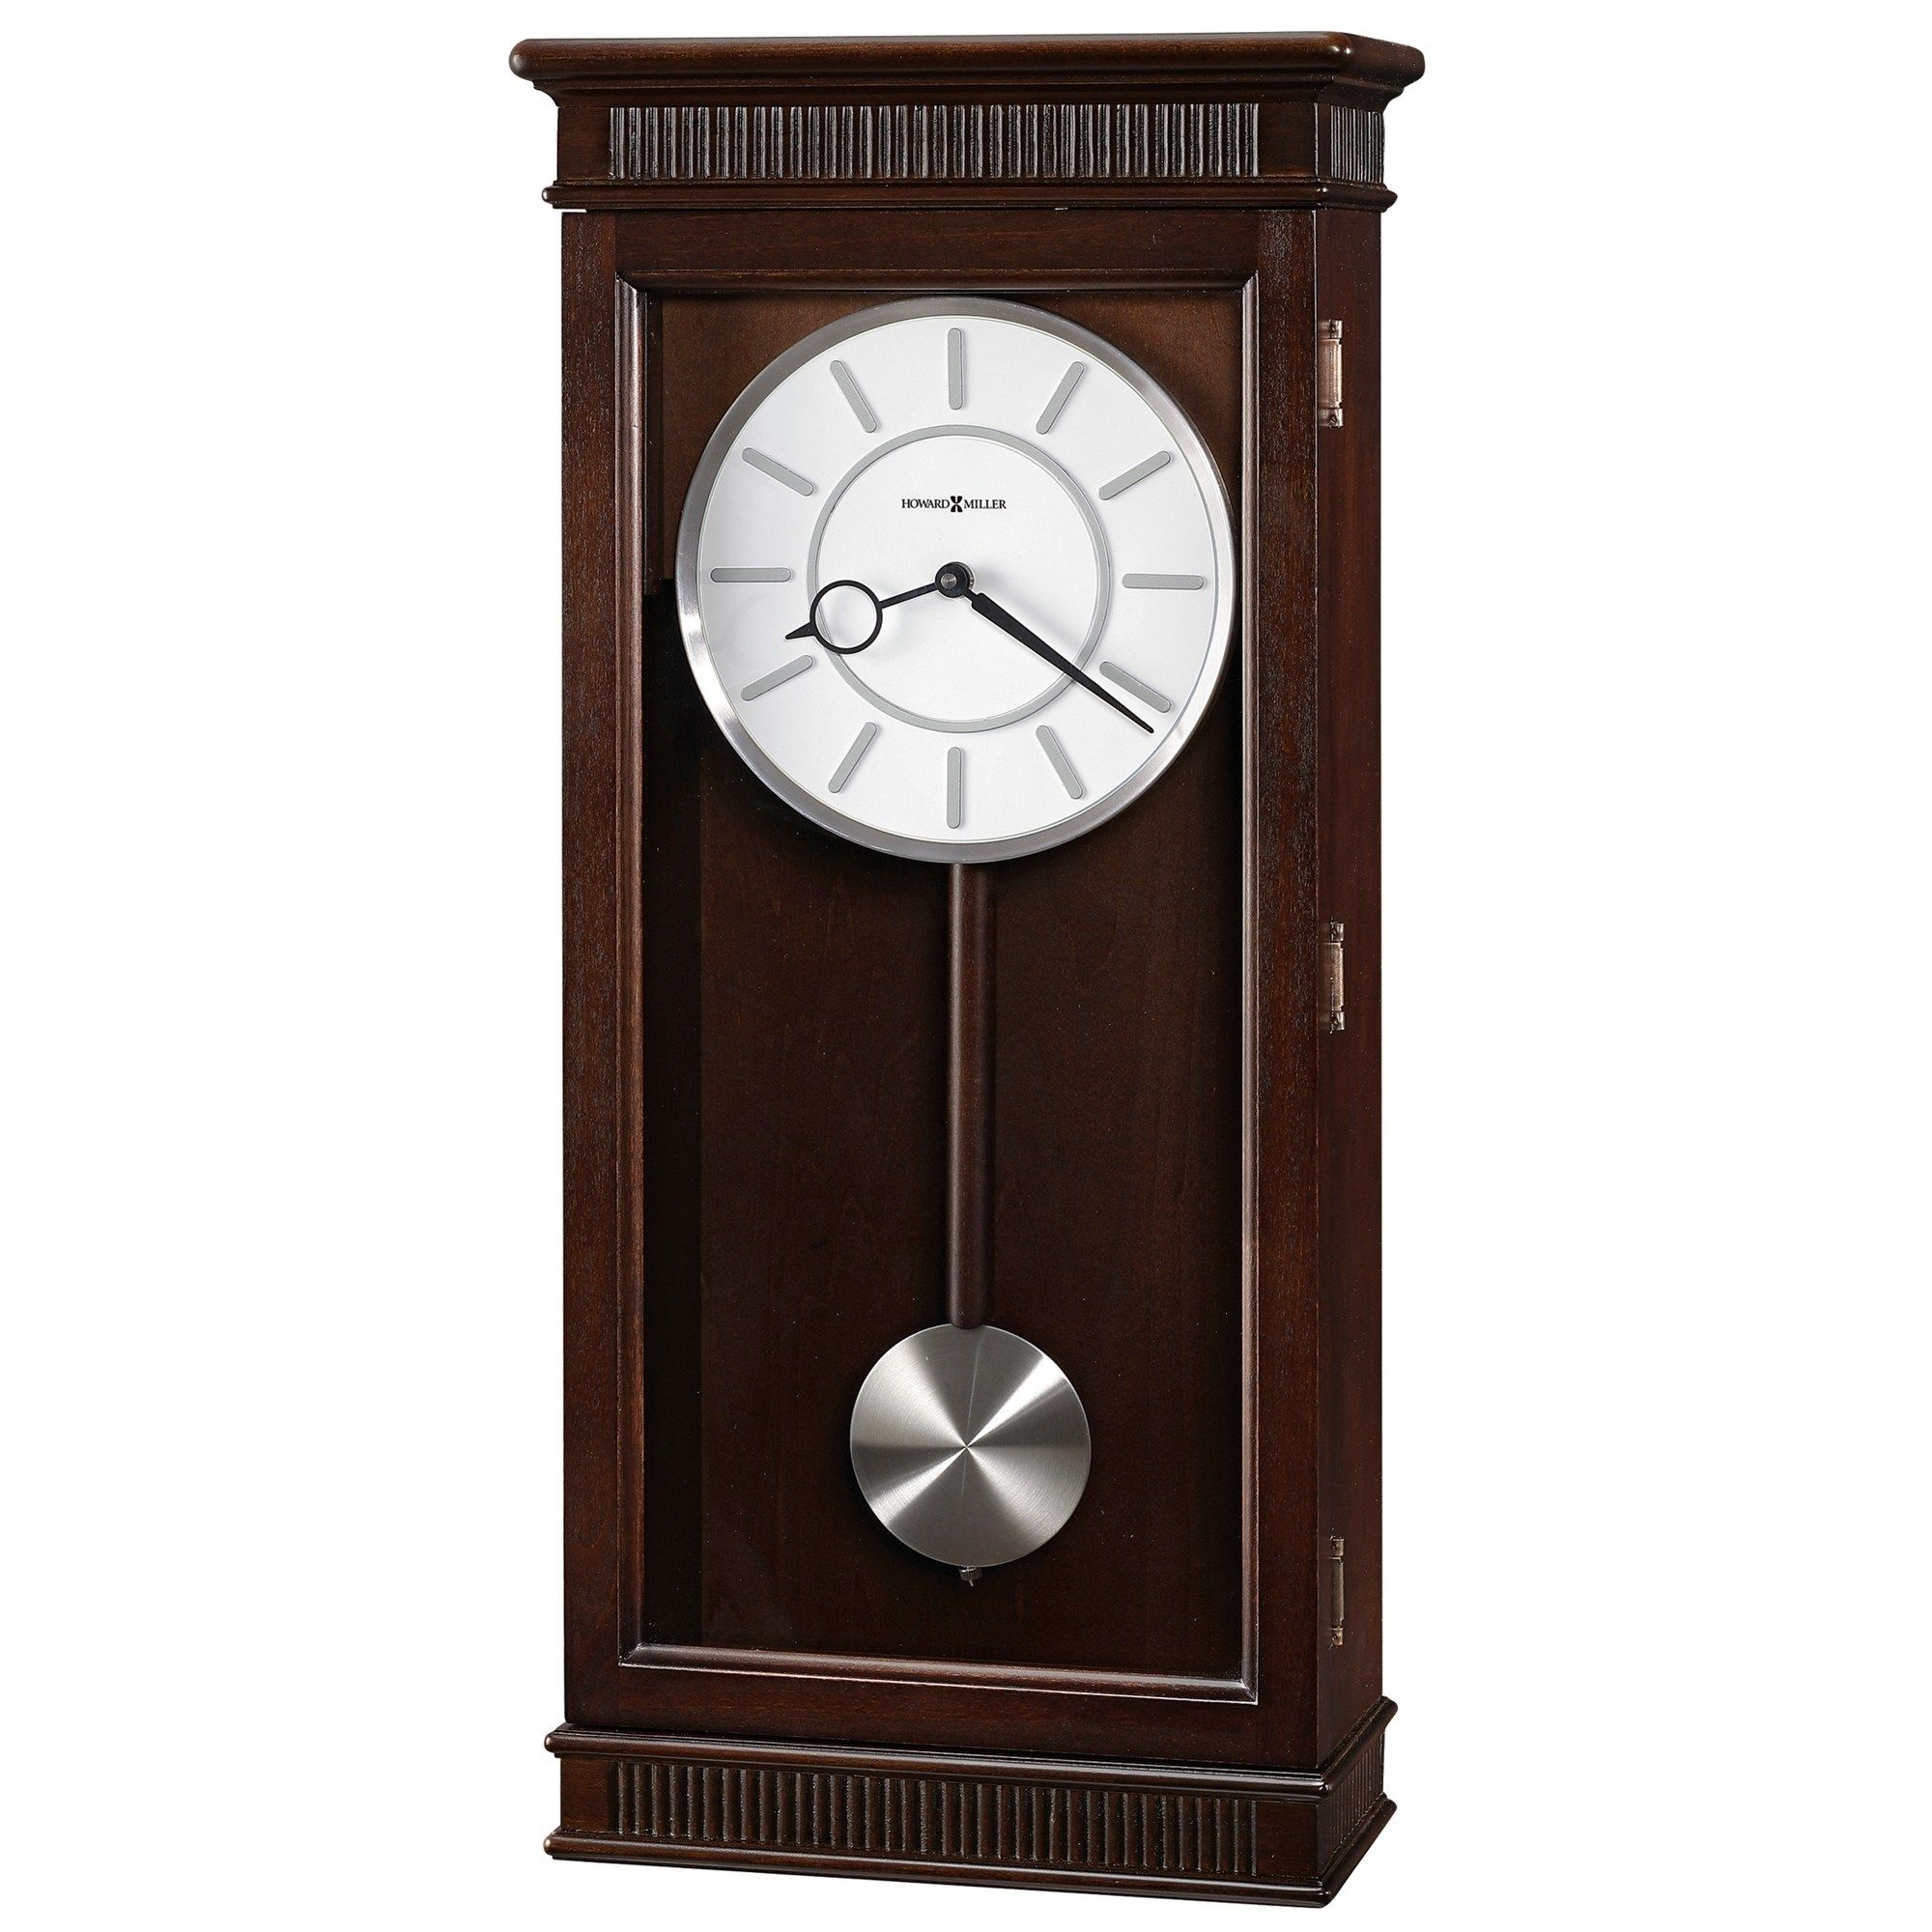 Howard Miller Kristyn Grandfather Style Chiming Wall Clock With Pendulum Charming Contemporary Modern Tr In 2020 Chiming Wall Clocks Pendulum Wall Clock Wall Clock